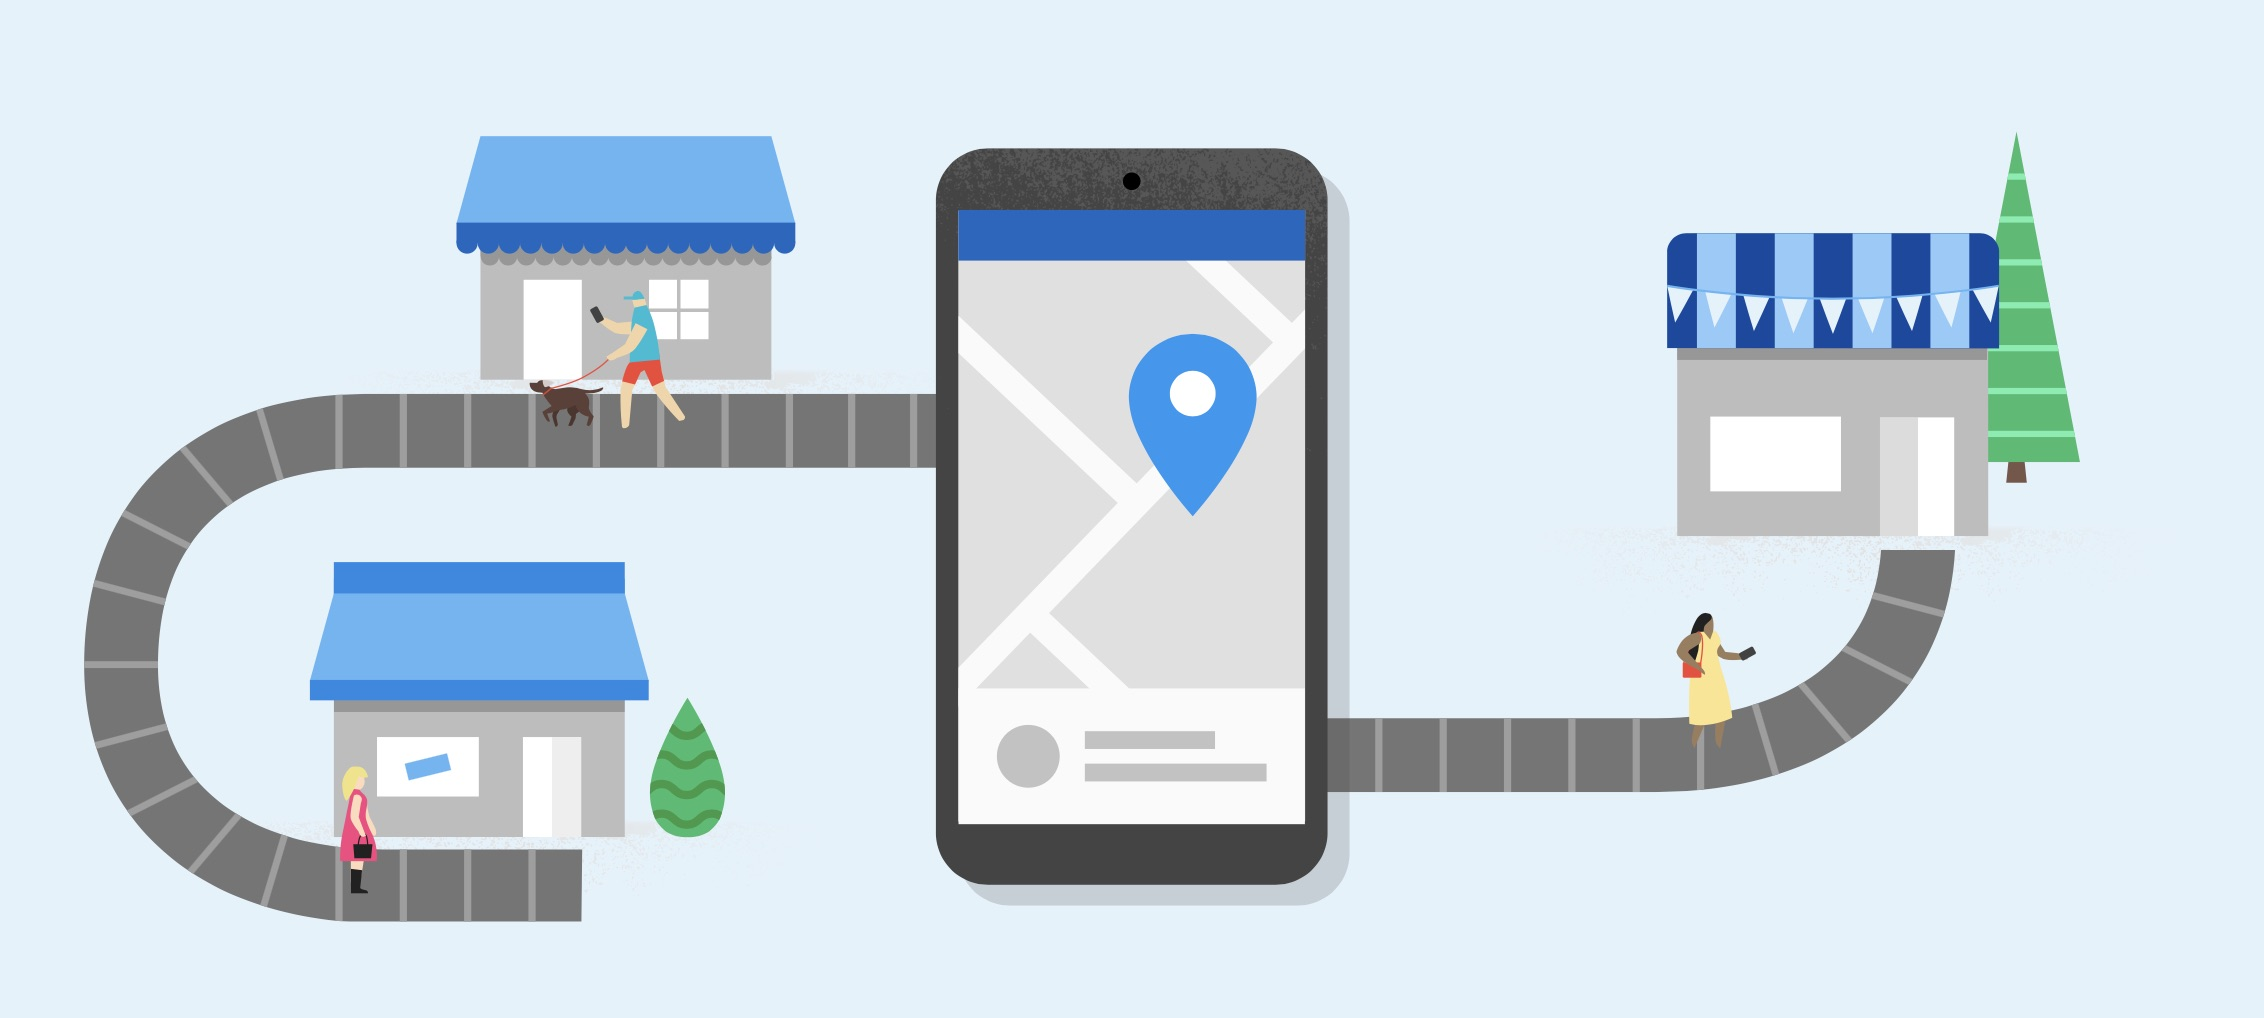 Google Maps Marketing Tips For Growing Your Business